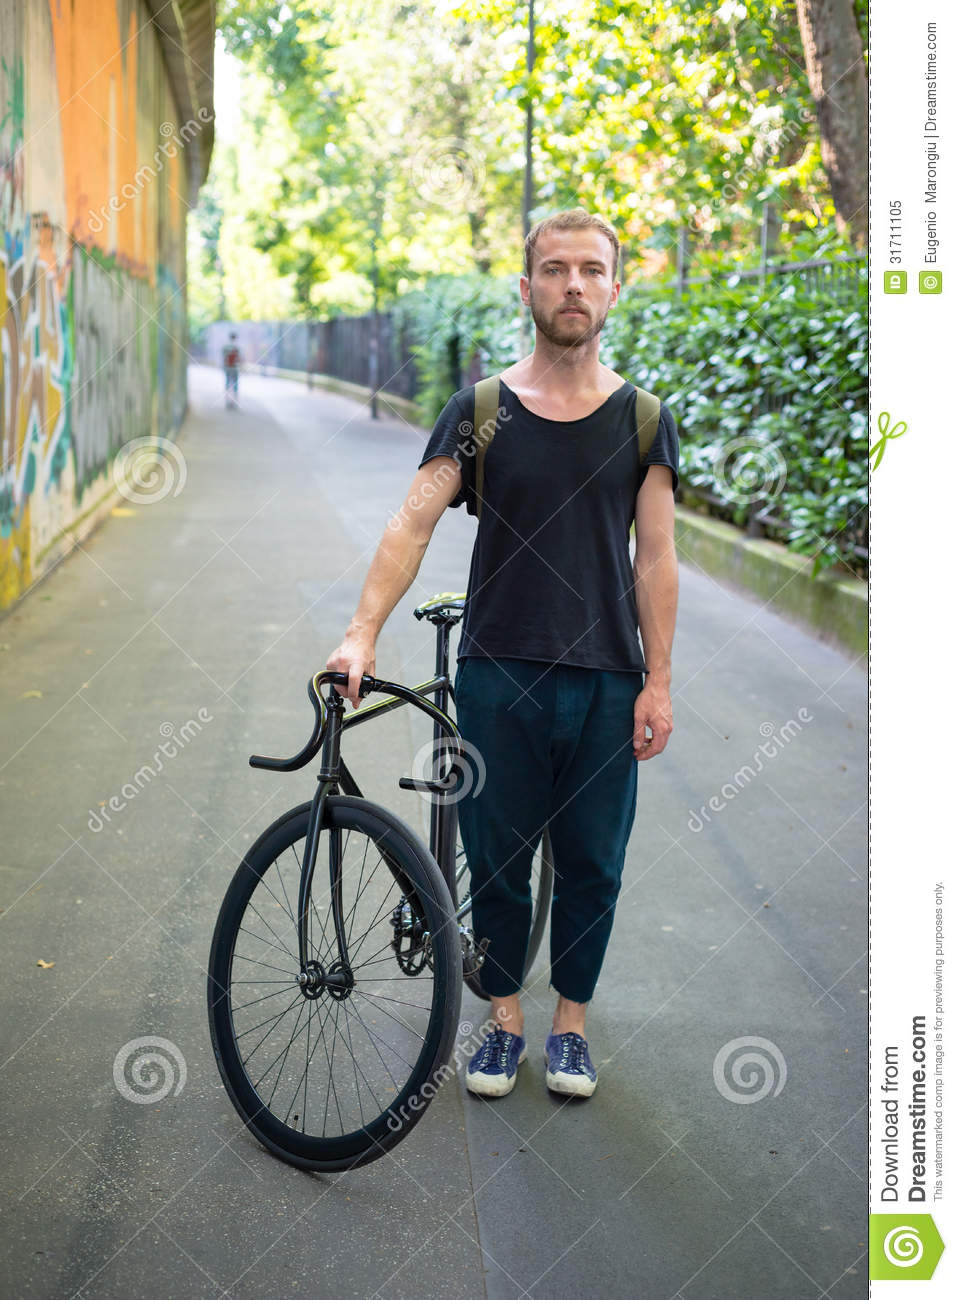 Hipster Modern Stylish Blonde Man With Bike Stock Image ...